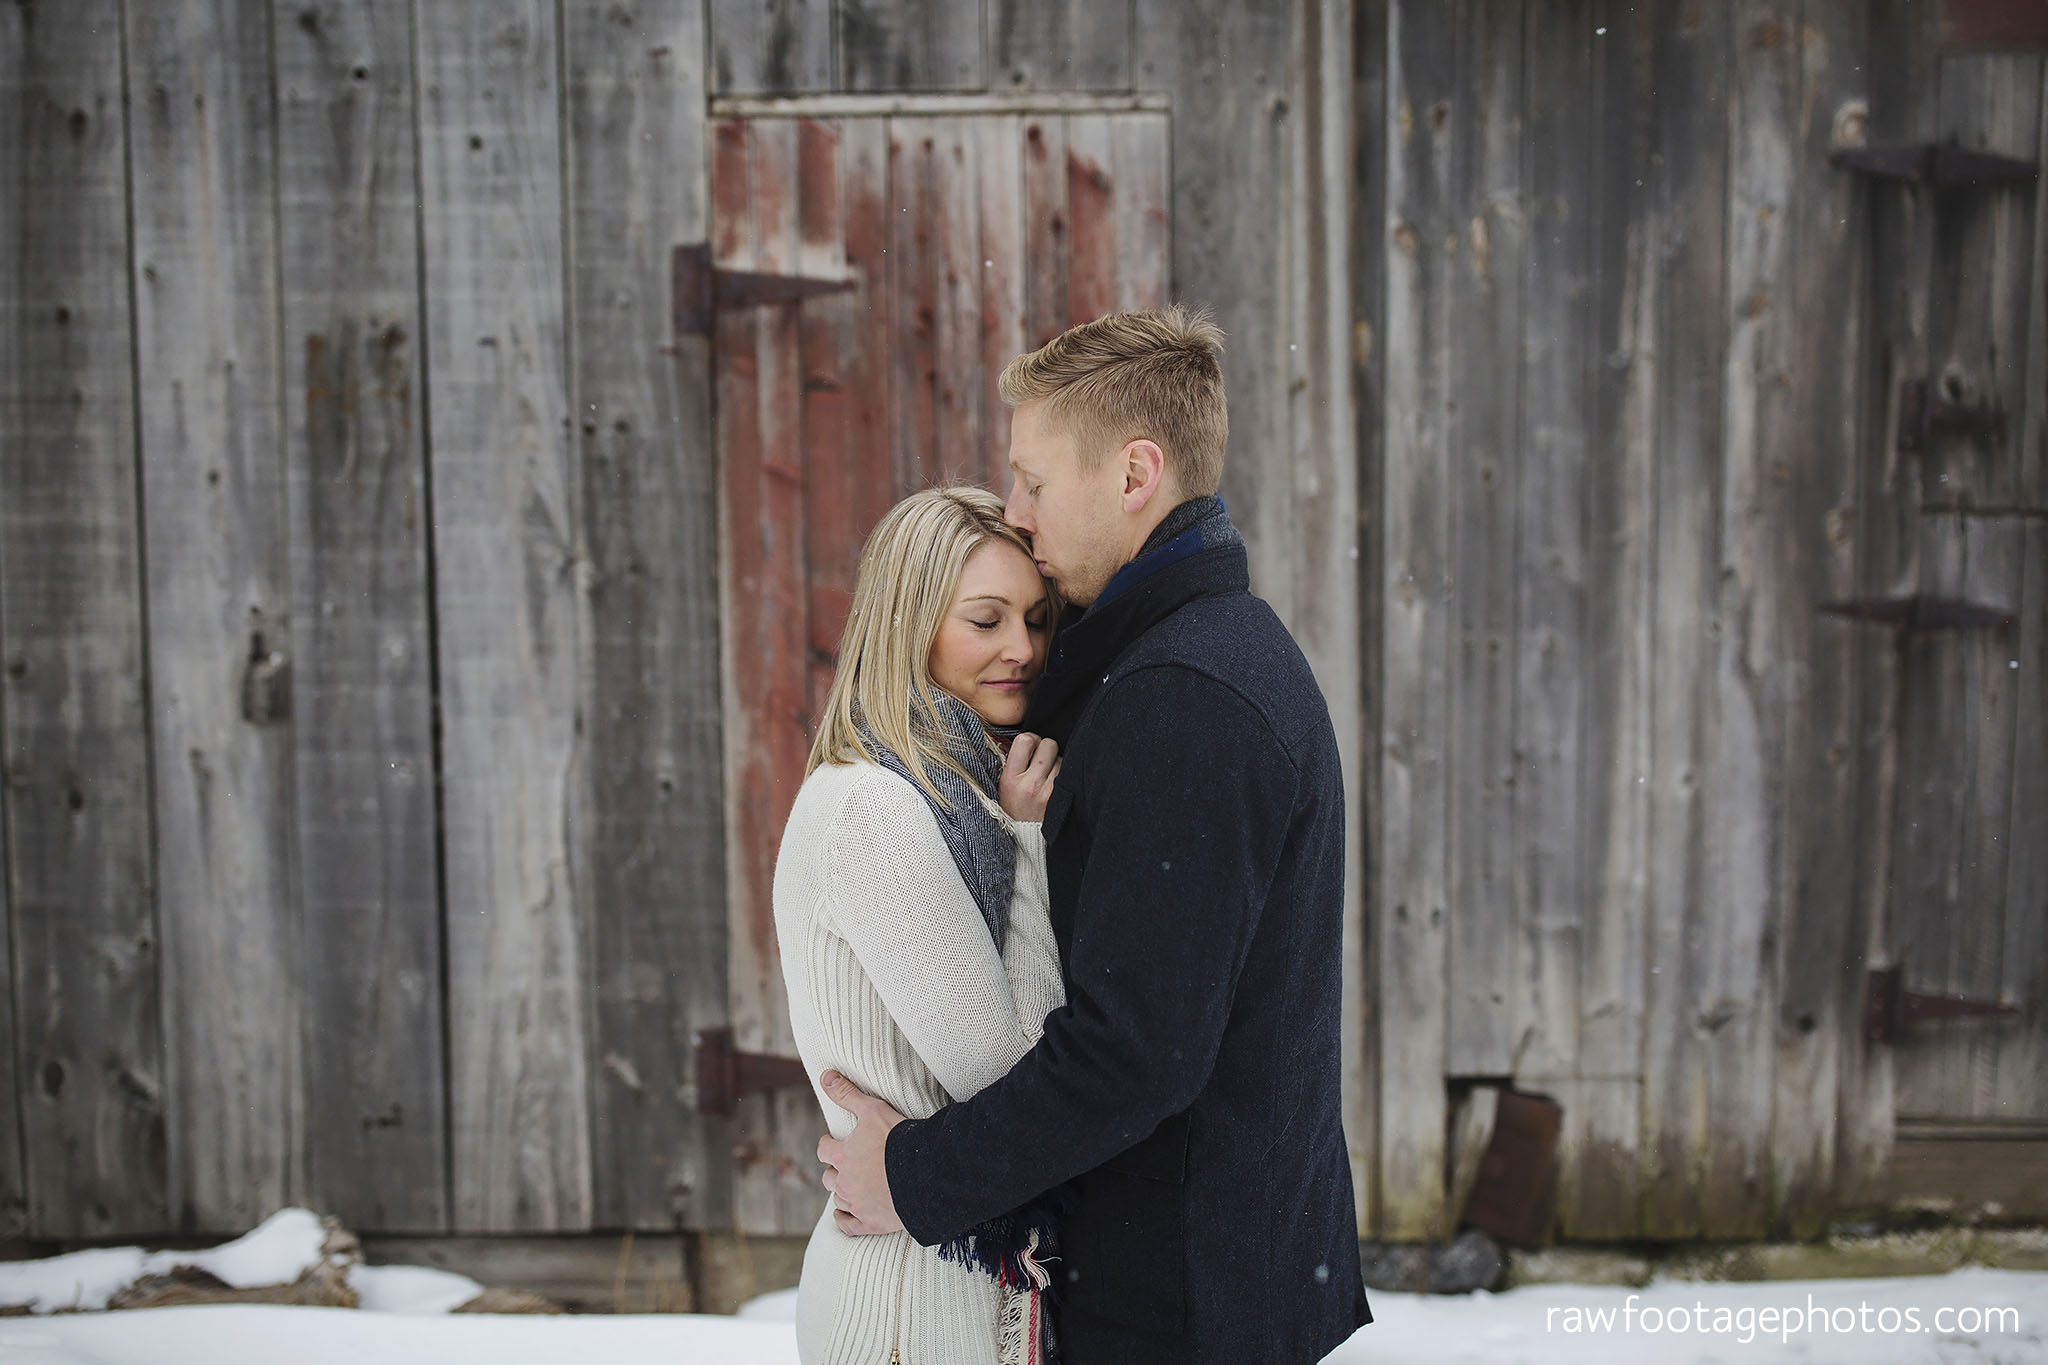 london_ontario_wedding_photographer-engagement_session-goderich_ontario-winter_e_session-barn_photos-raw_footage_photography002.jpg